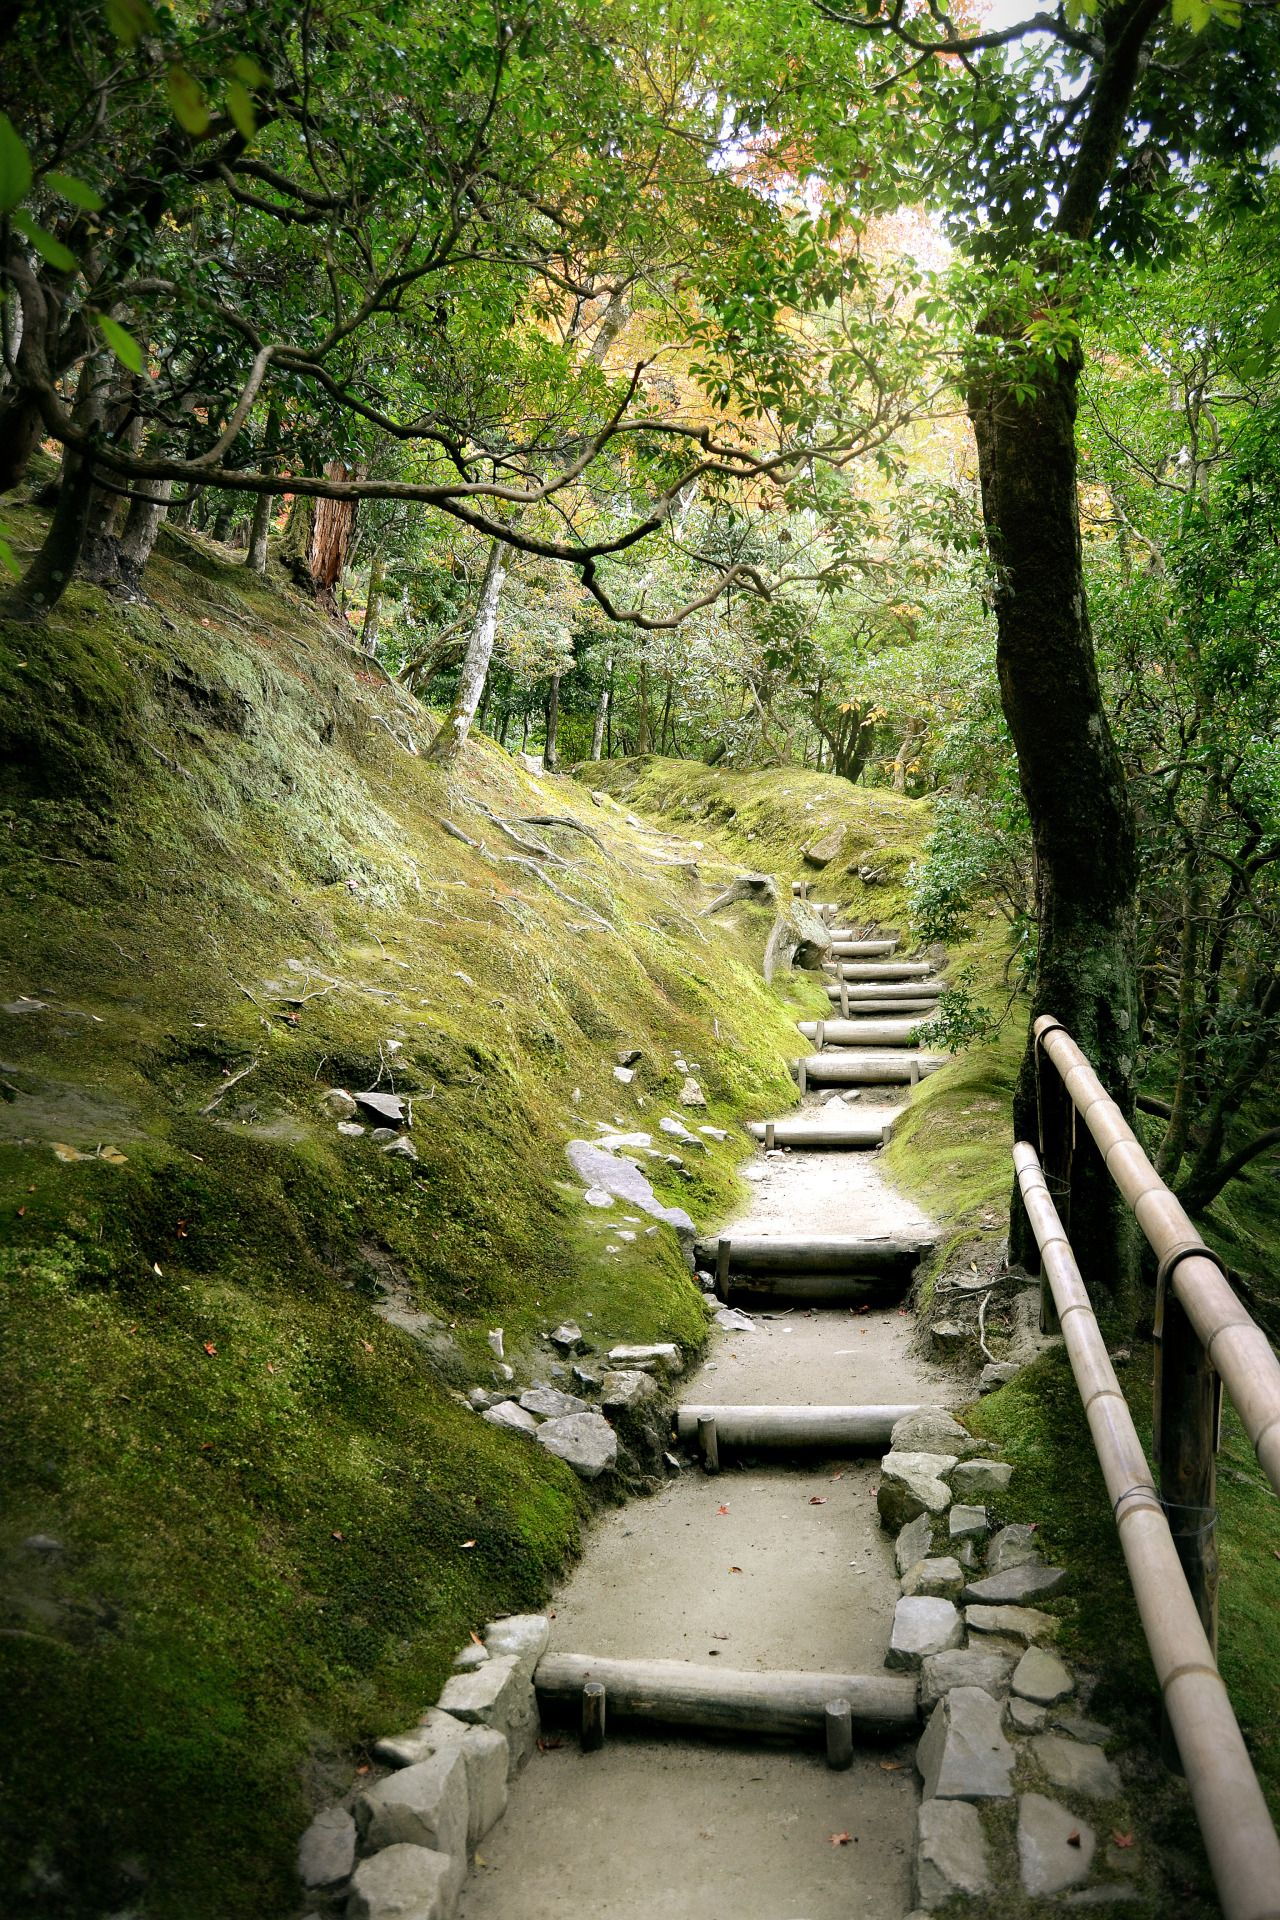 b-no-photo-stuff:  - A path in the forest - Somewhere in Kyoto - 2014 -